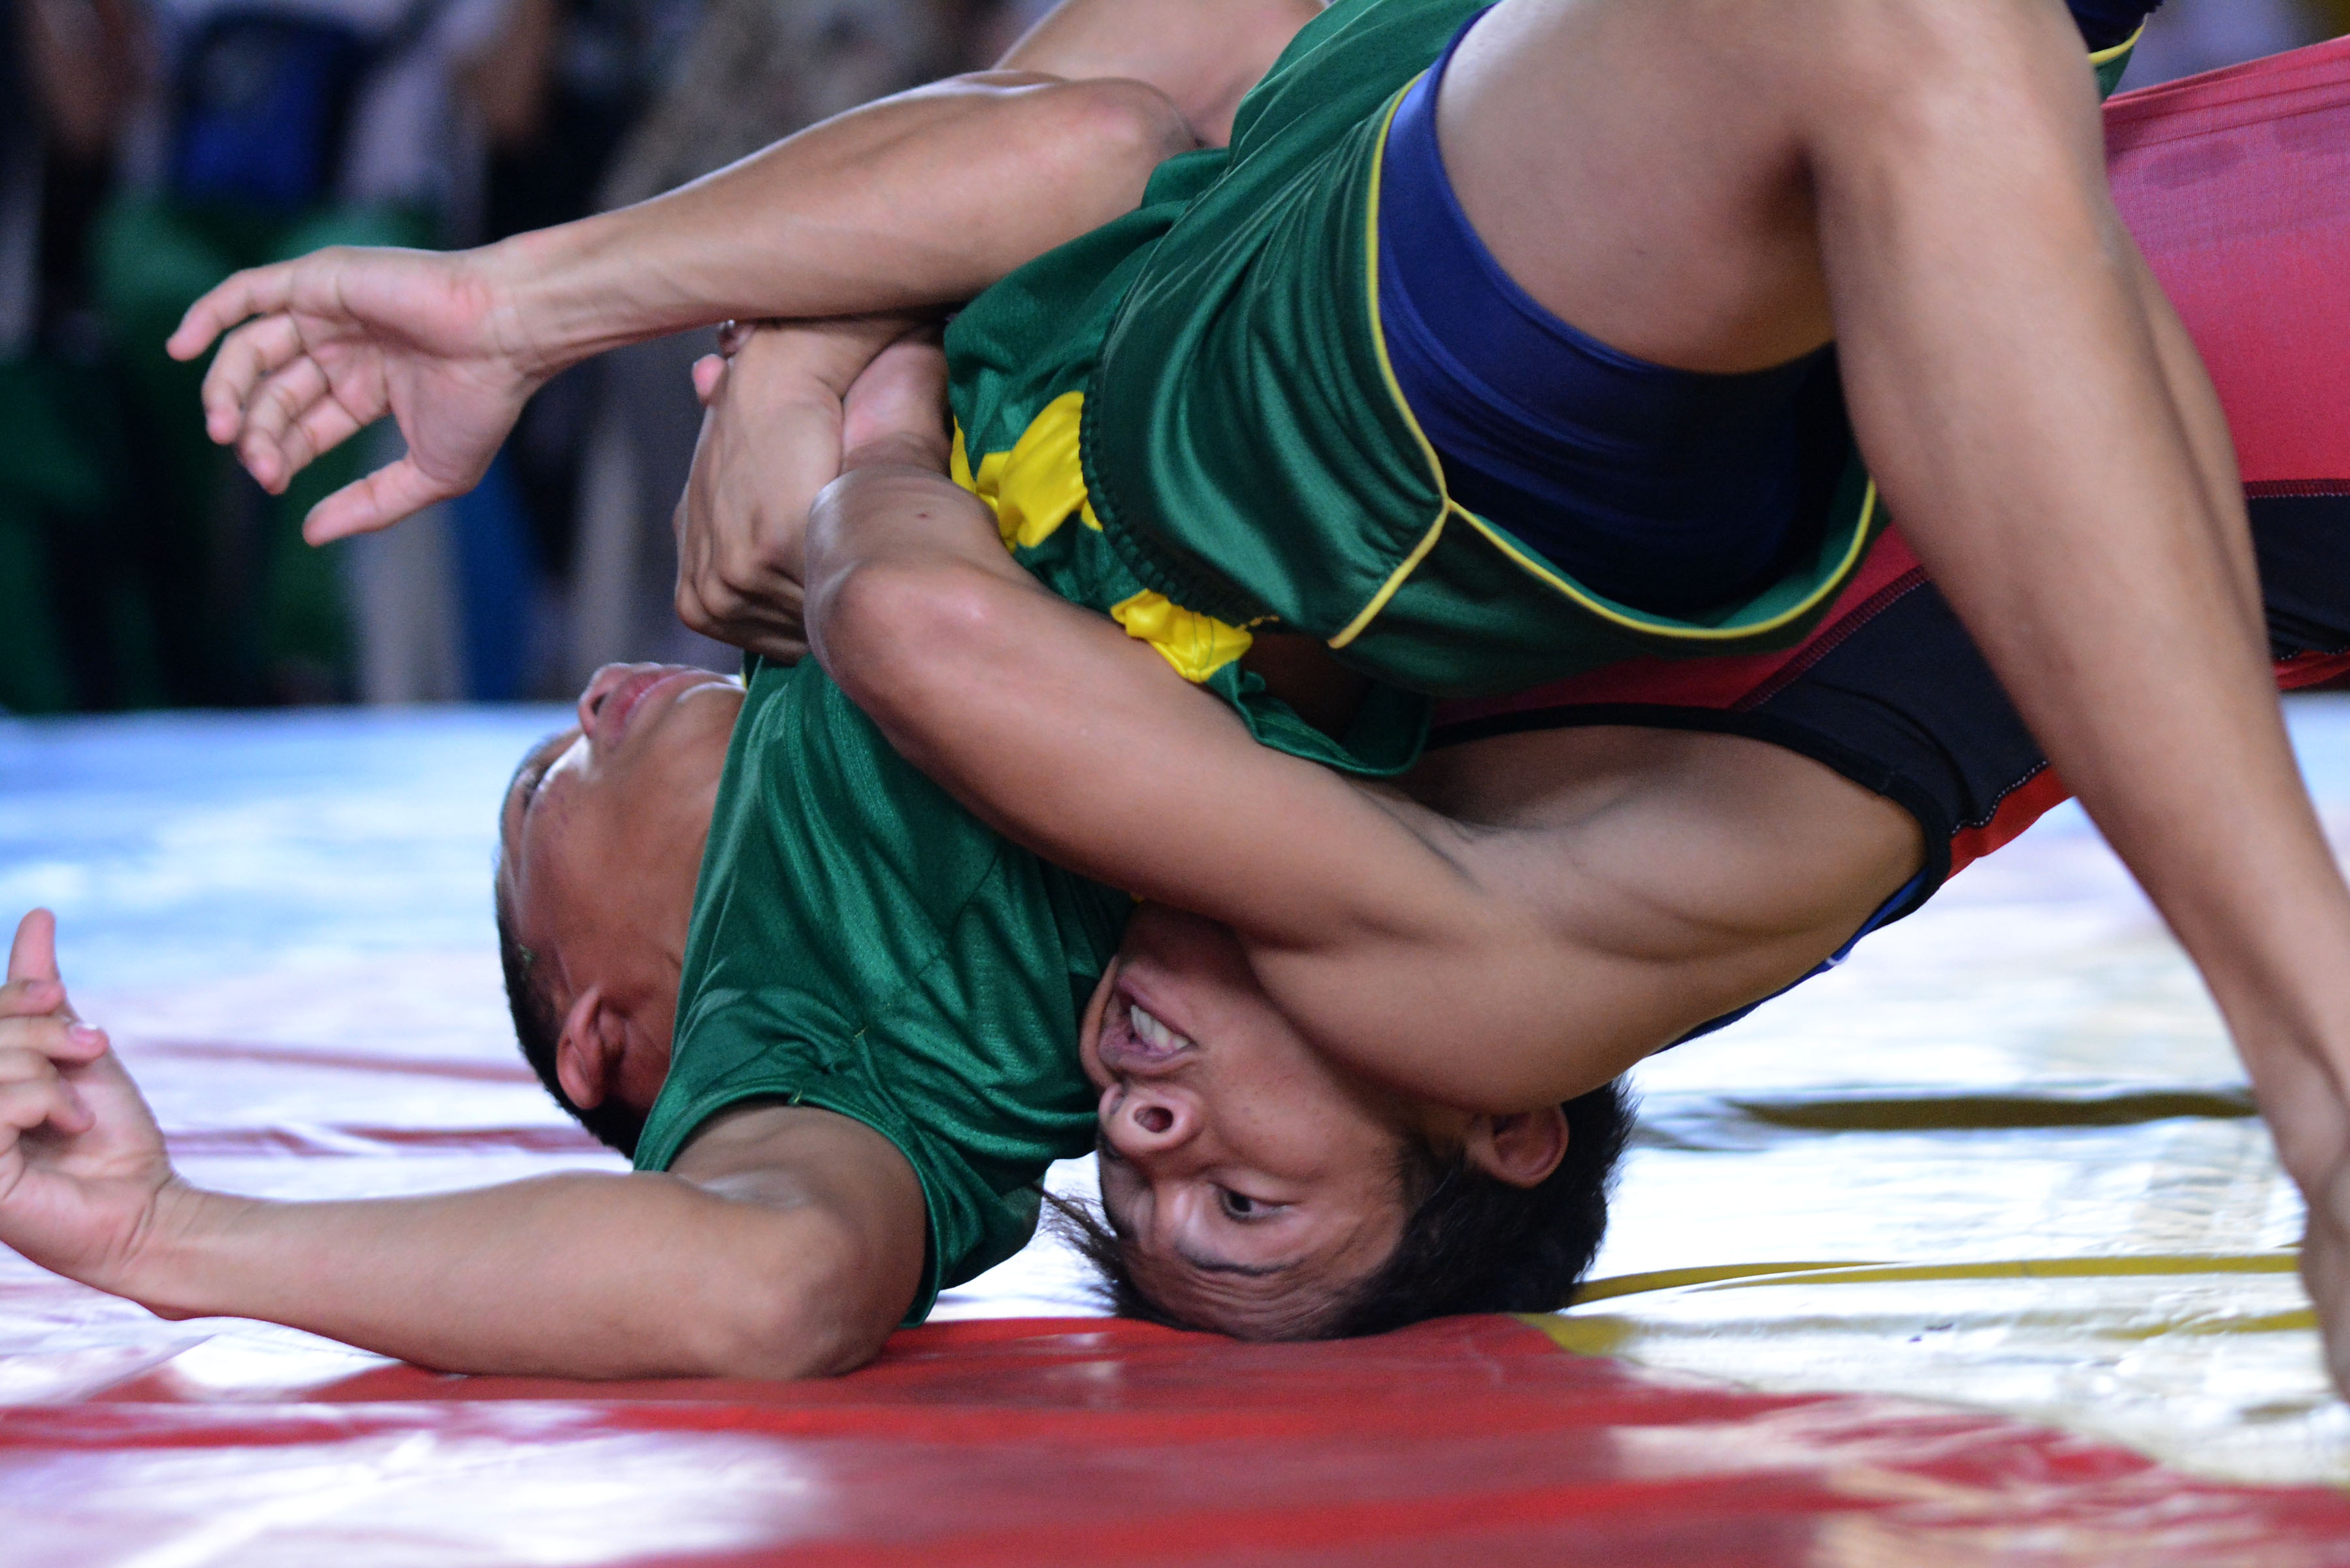 ON THE MAT. Wrestlers grapple on the mat during a match. Photo by Roy Secretario/ Rappler